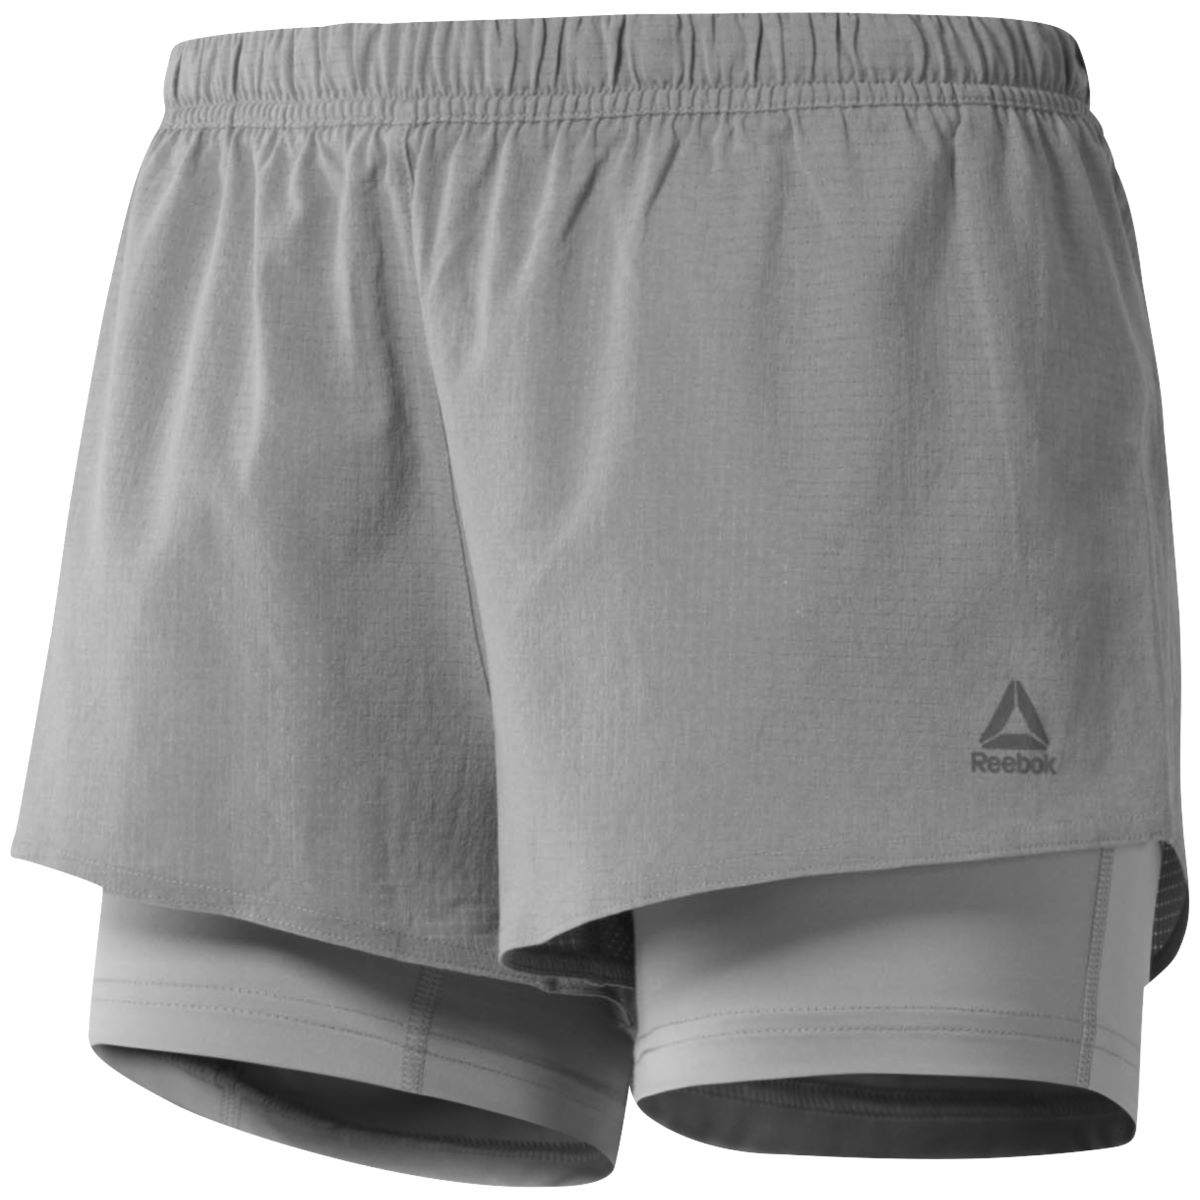 Short Femme Reebok One Series Run (2 en 1) - XS Powder Grey